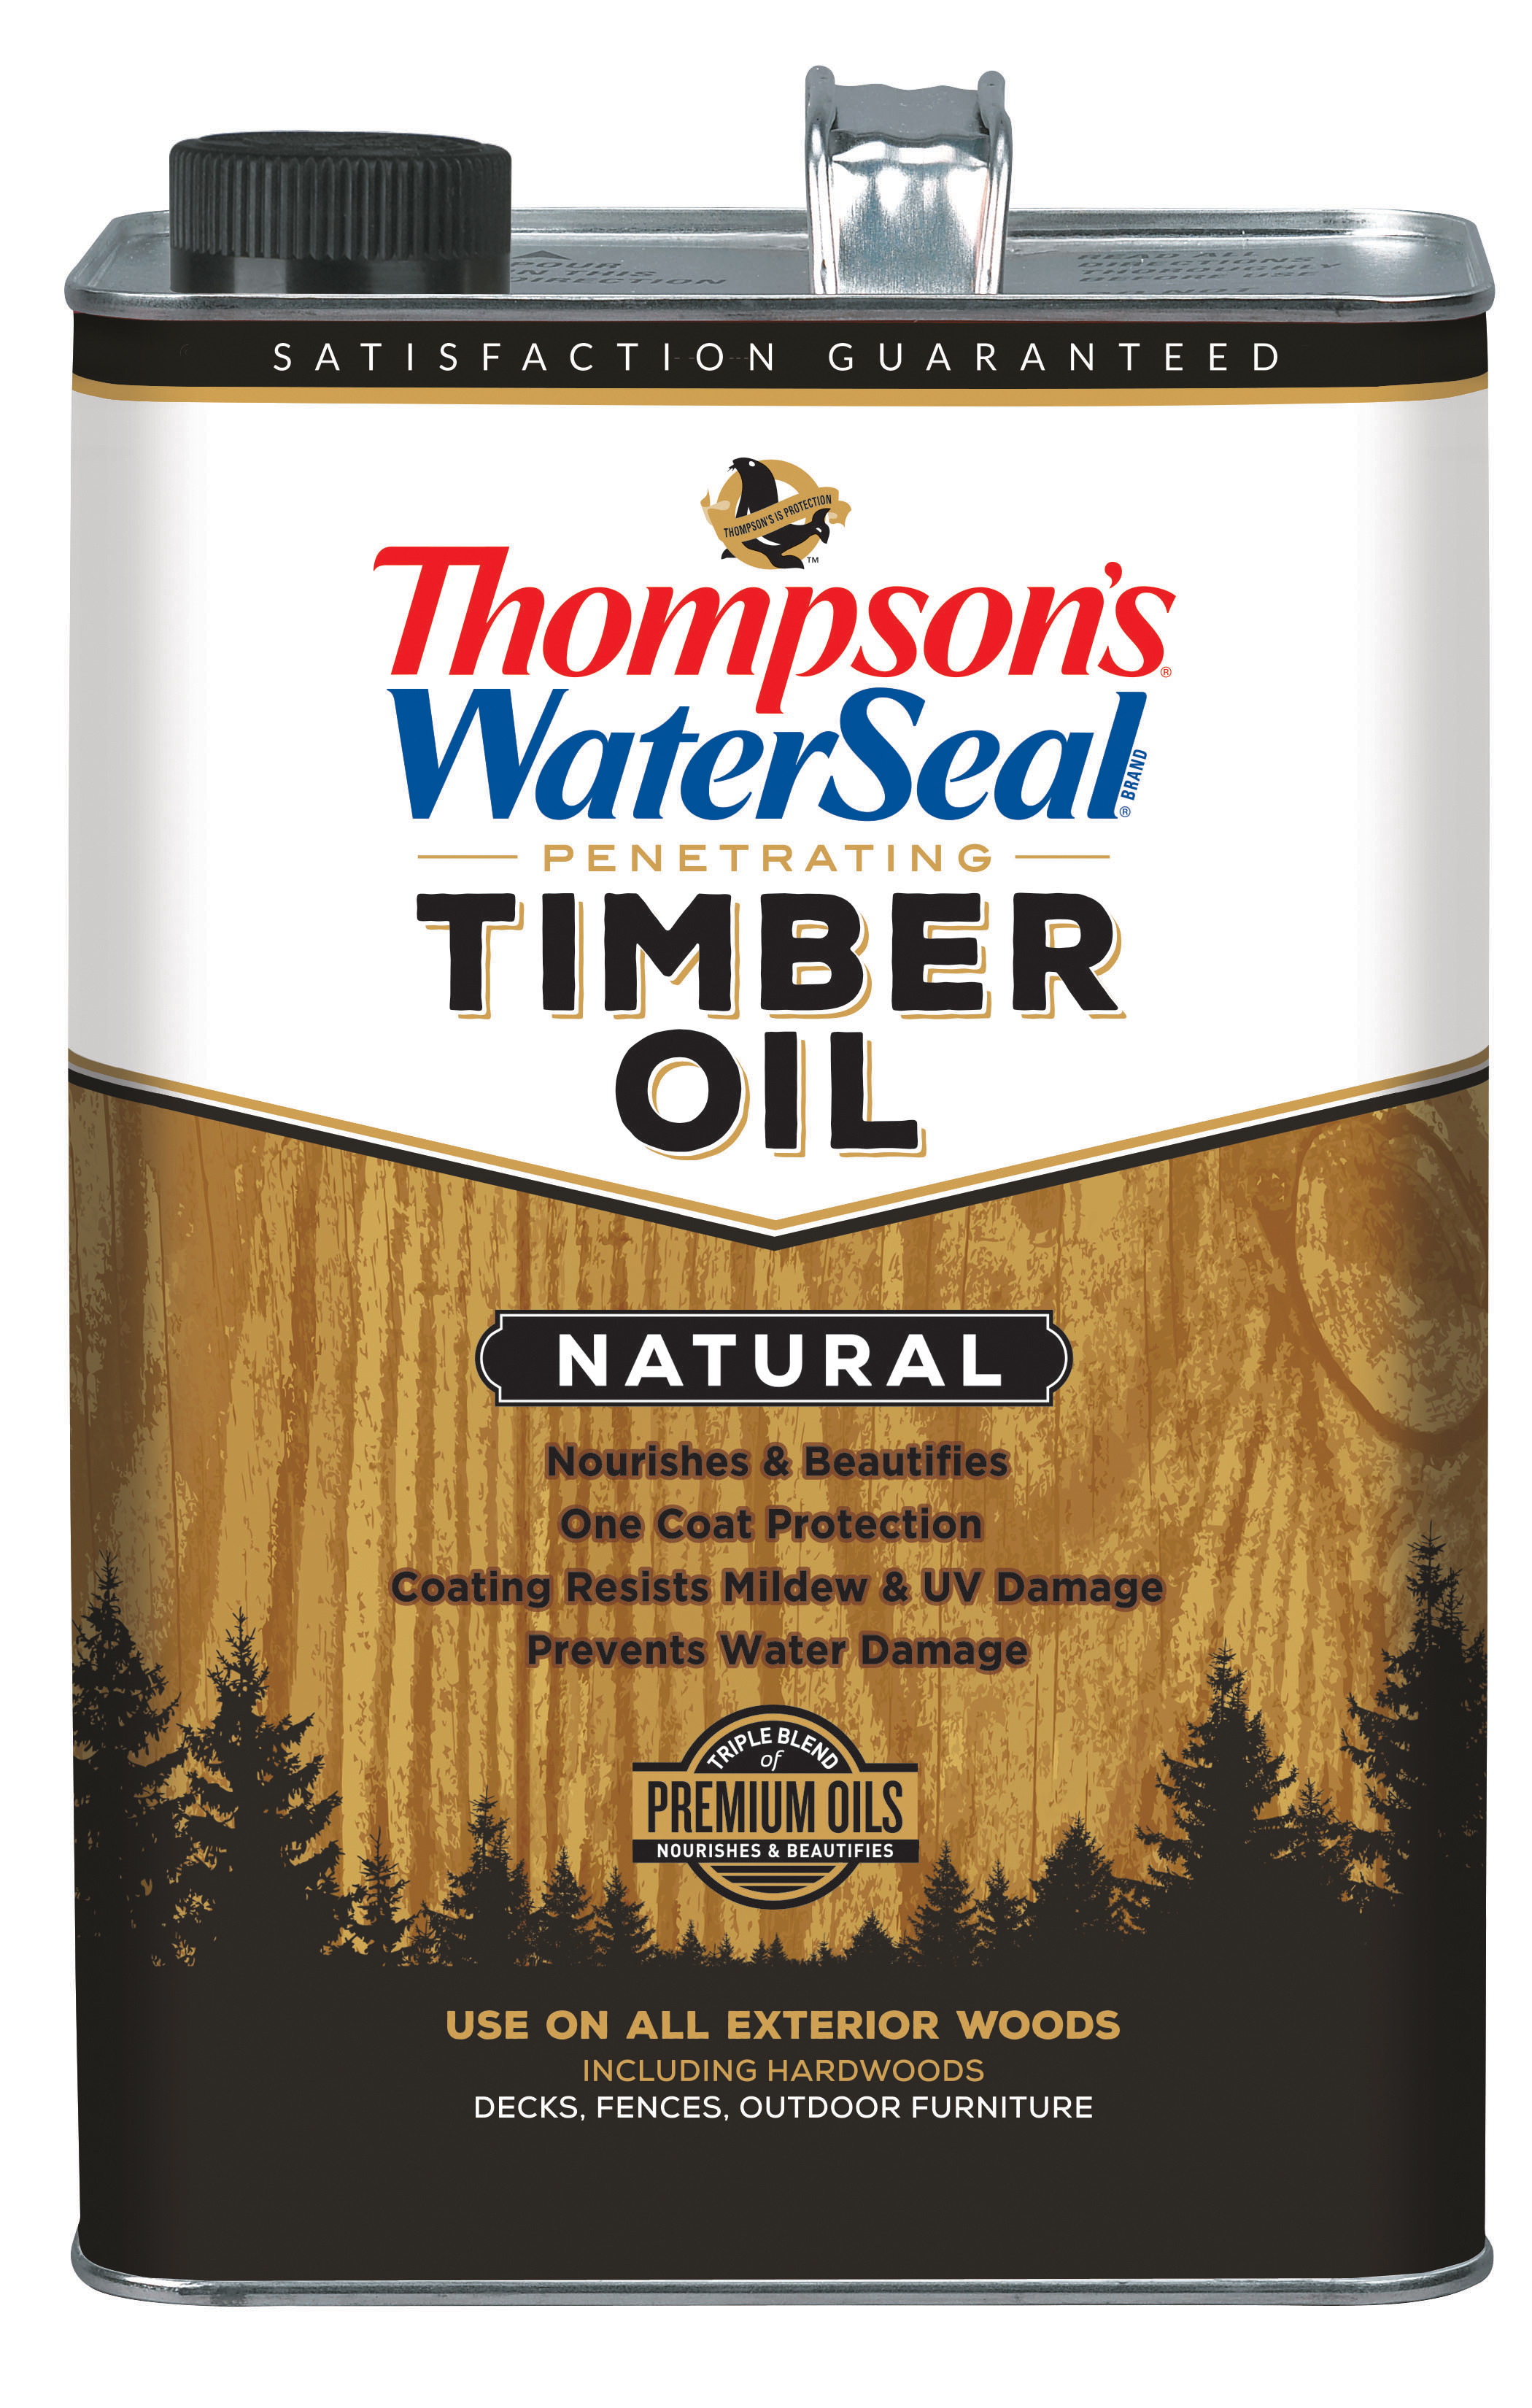 thompson s waterseal brings innovation to the exterior wood